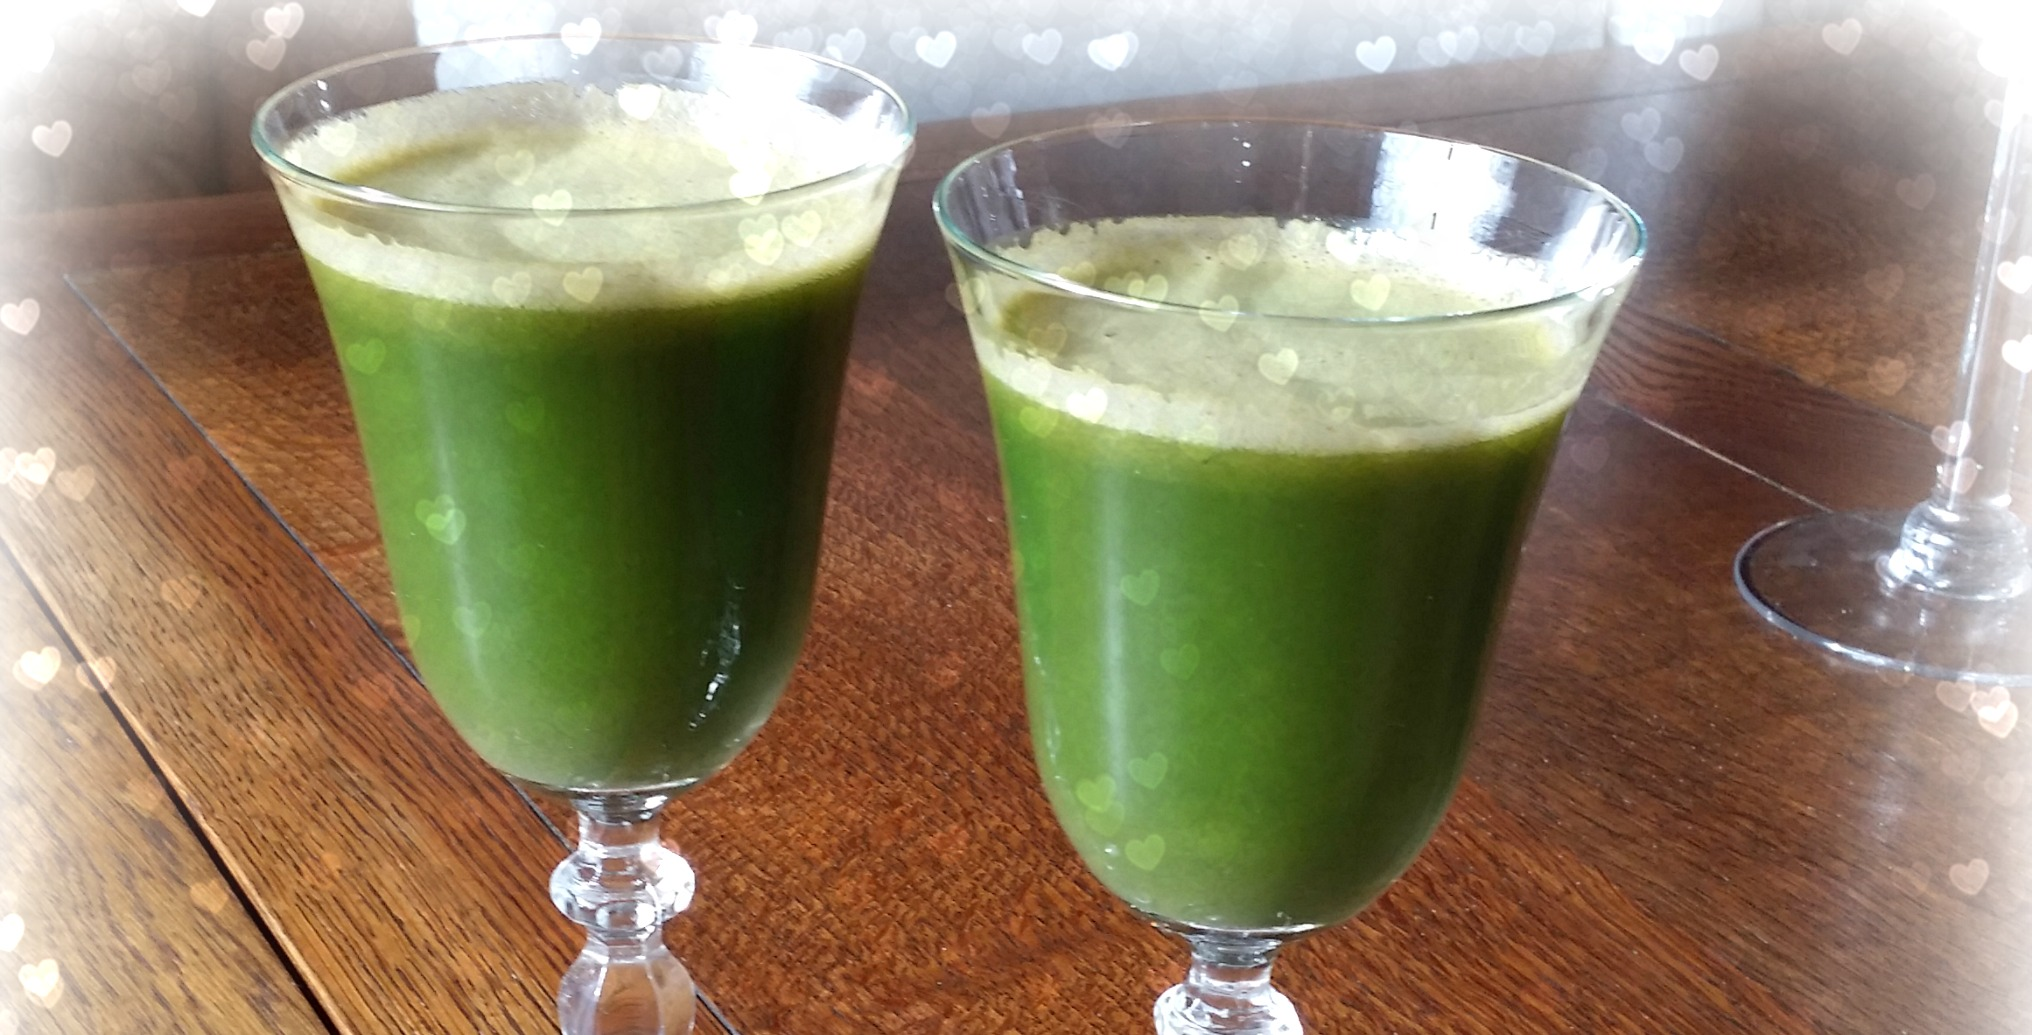 Green Juice Love With Hearts Copyright Jo-Ann Blondin